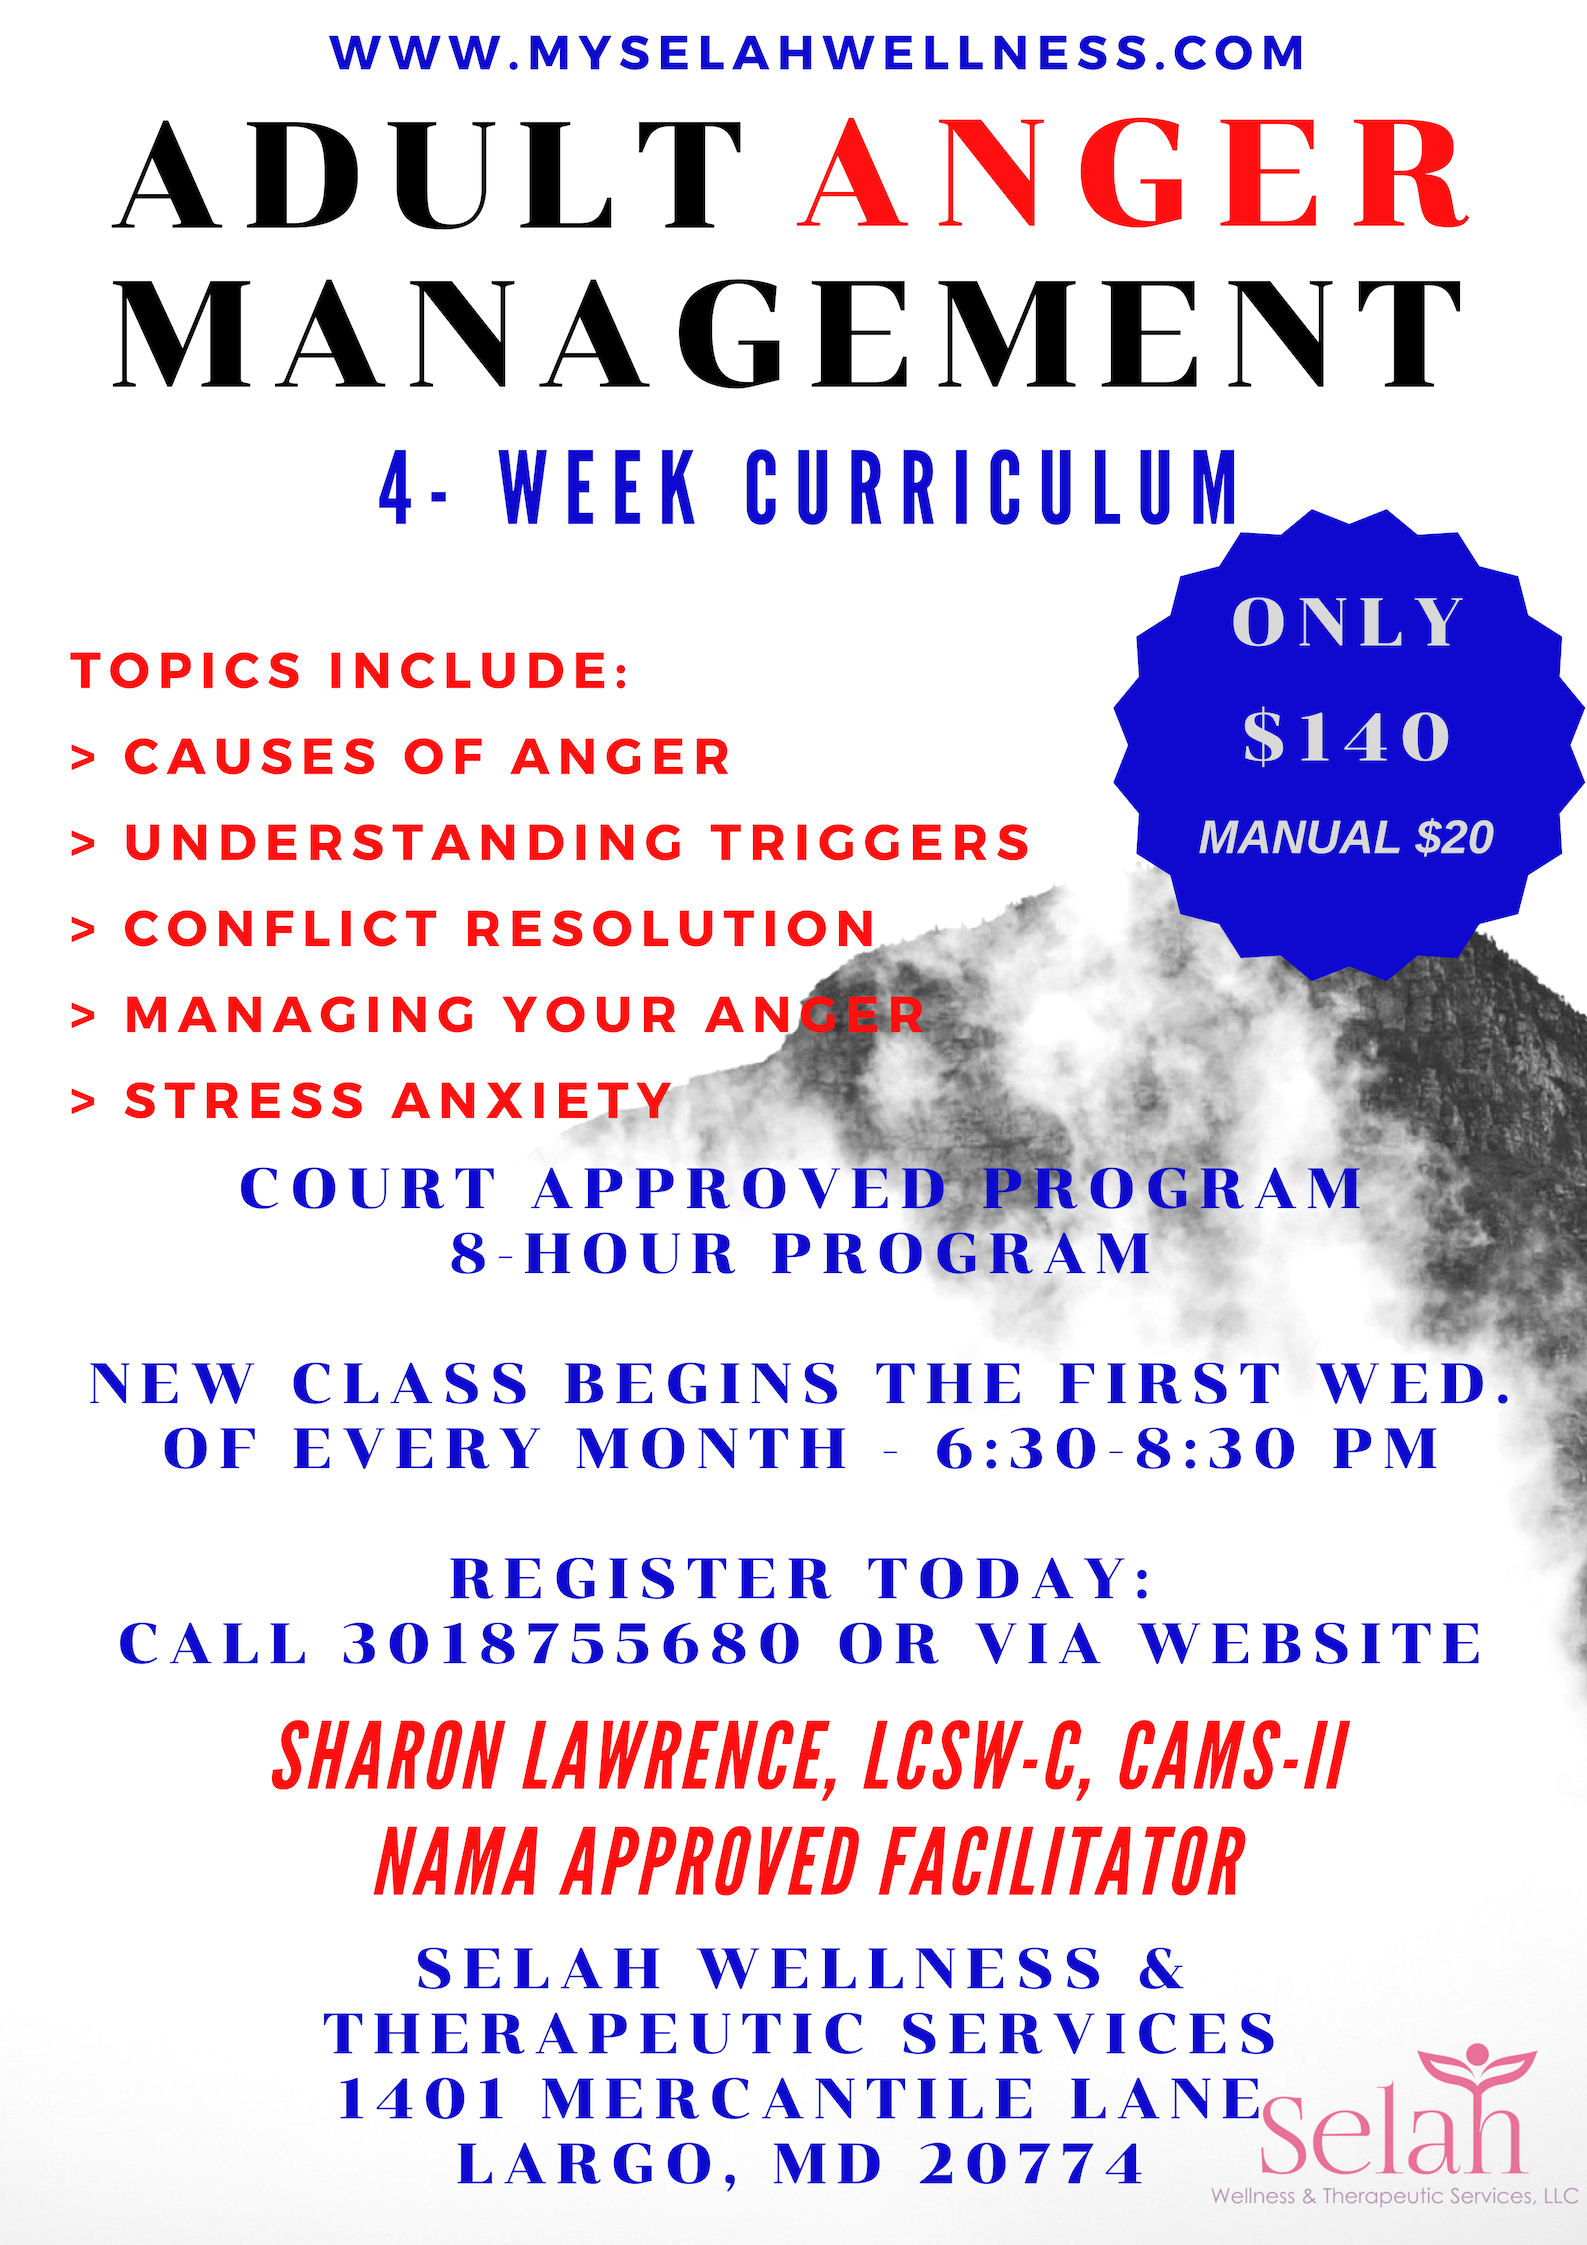 ADULTAnger Management Group - No Classes: December 2019Classes are ThursdaysNext Session begins: November 7, 2019Please call (301) 875-5680 or email Admin@myselahwellness.com for more informationNO Children Allowed.Payments for Group and Manual is Non-Refundable.Register Here: www.myselahwellness.com/shop/anger